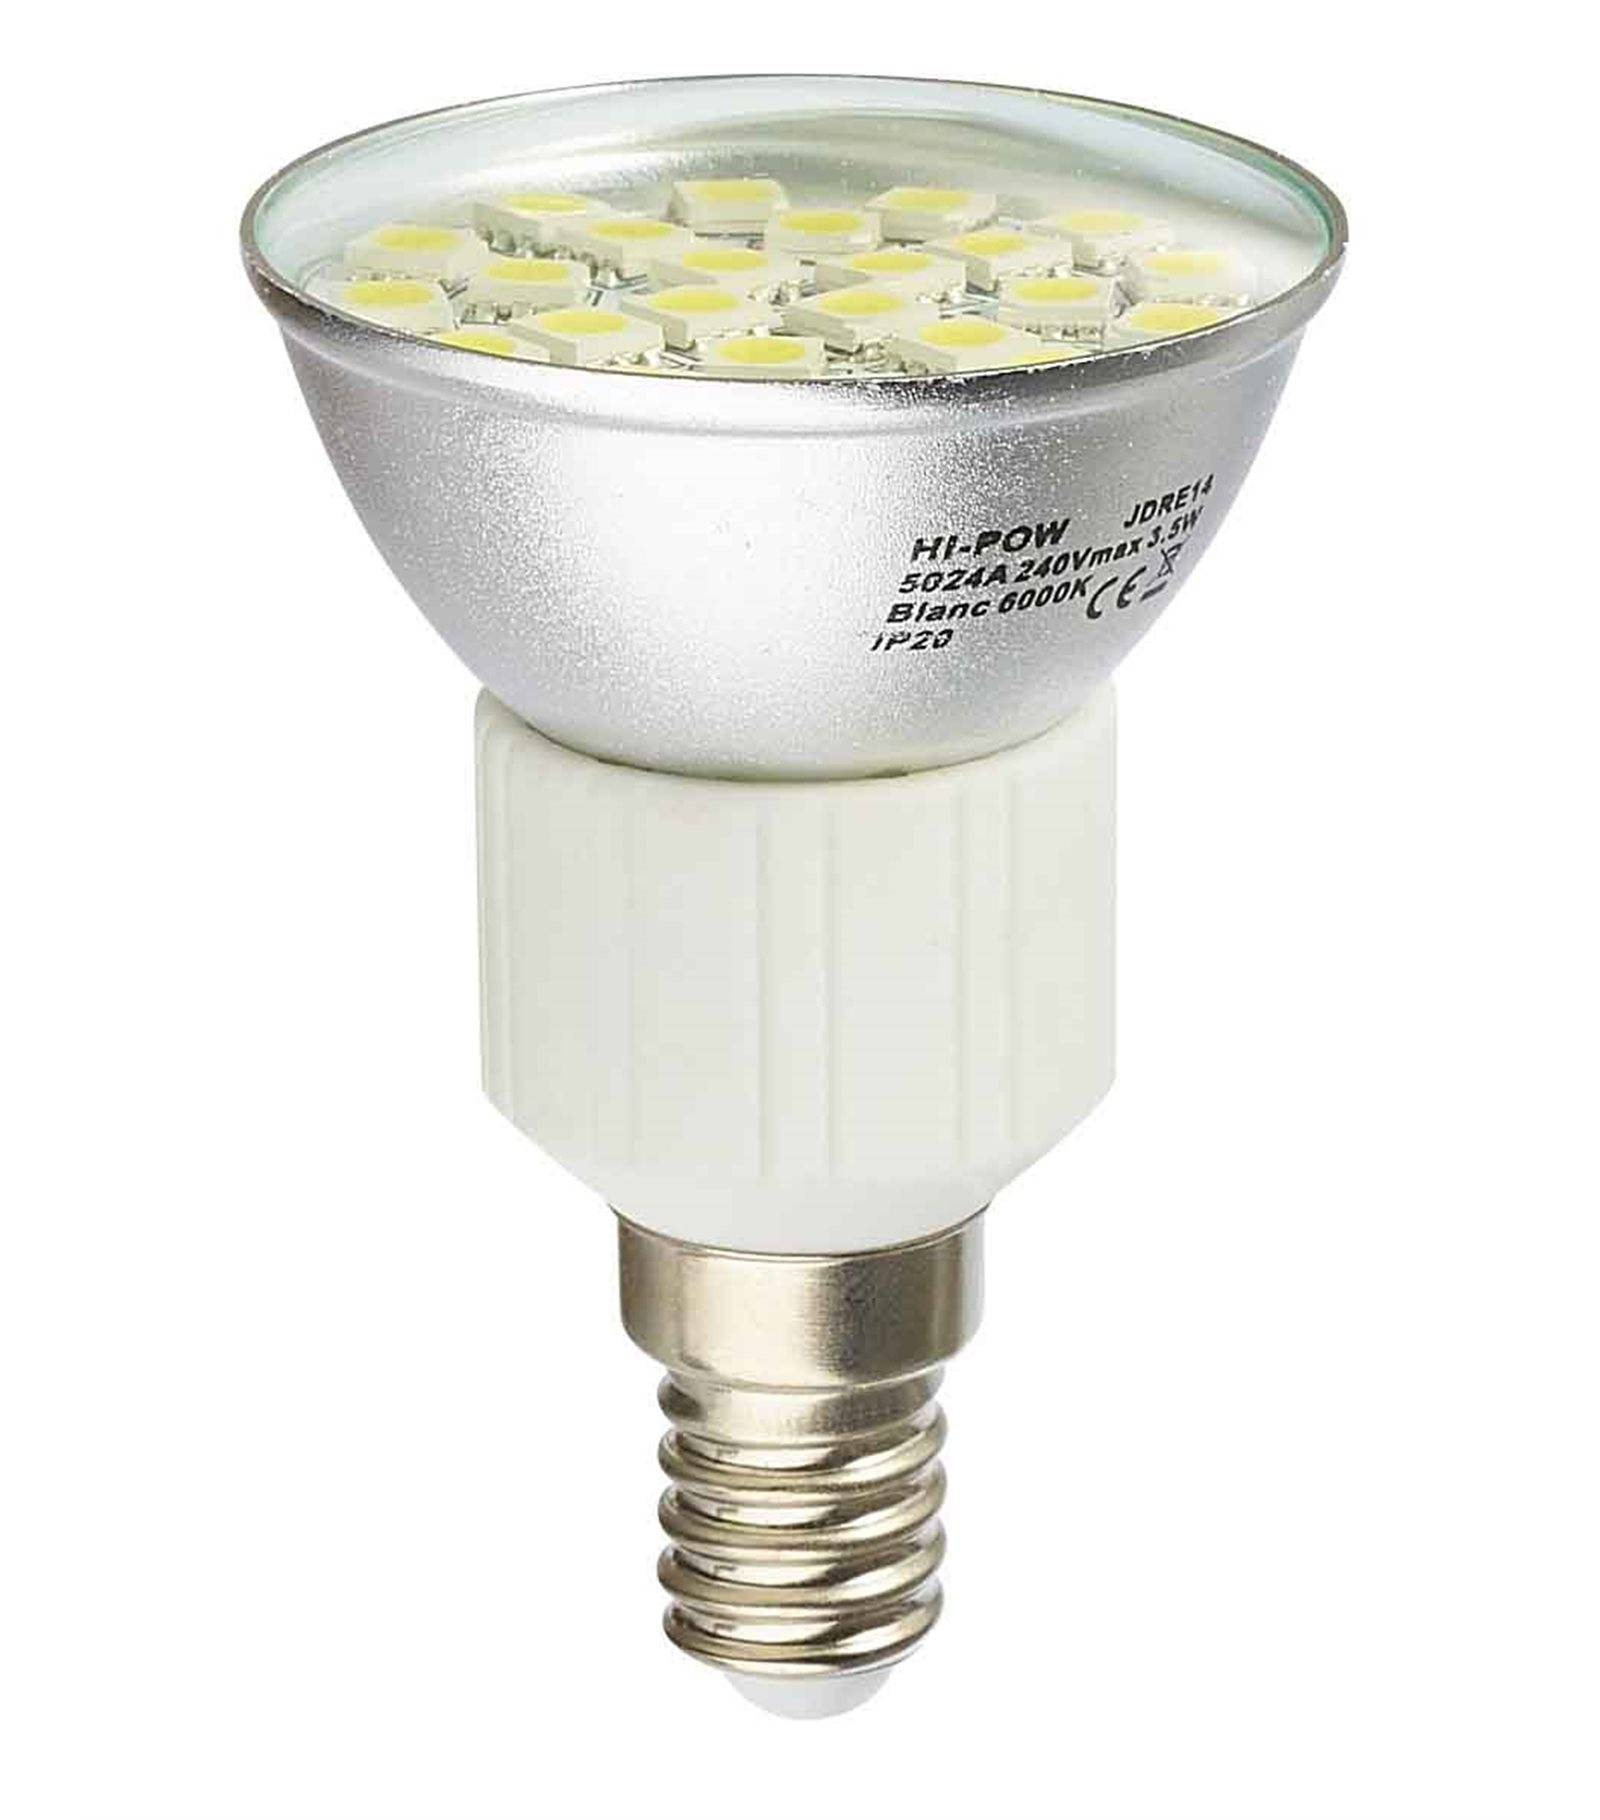 Ampoule Led E14 Blanc Froid Destockage Ampoule Led E14 Dimmable à 24 Smd5024 4w 310lm